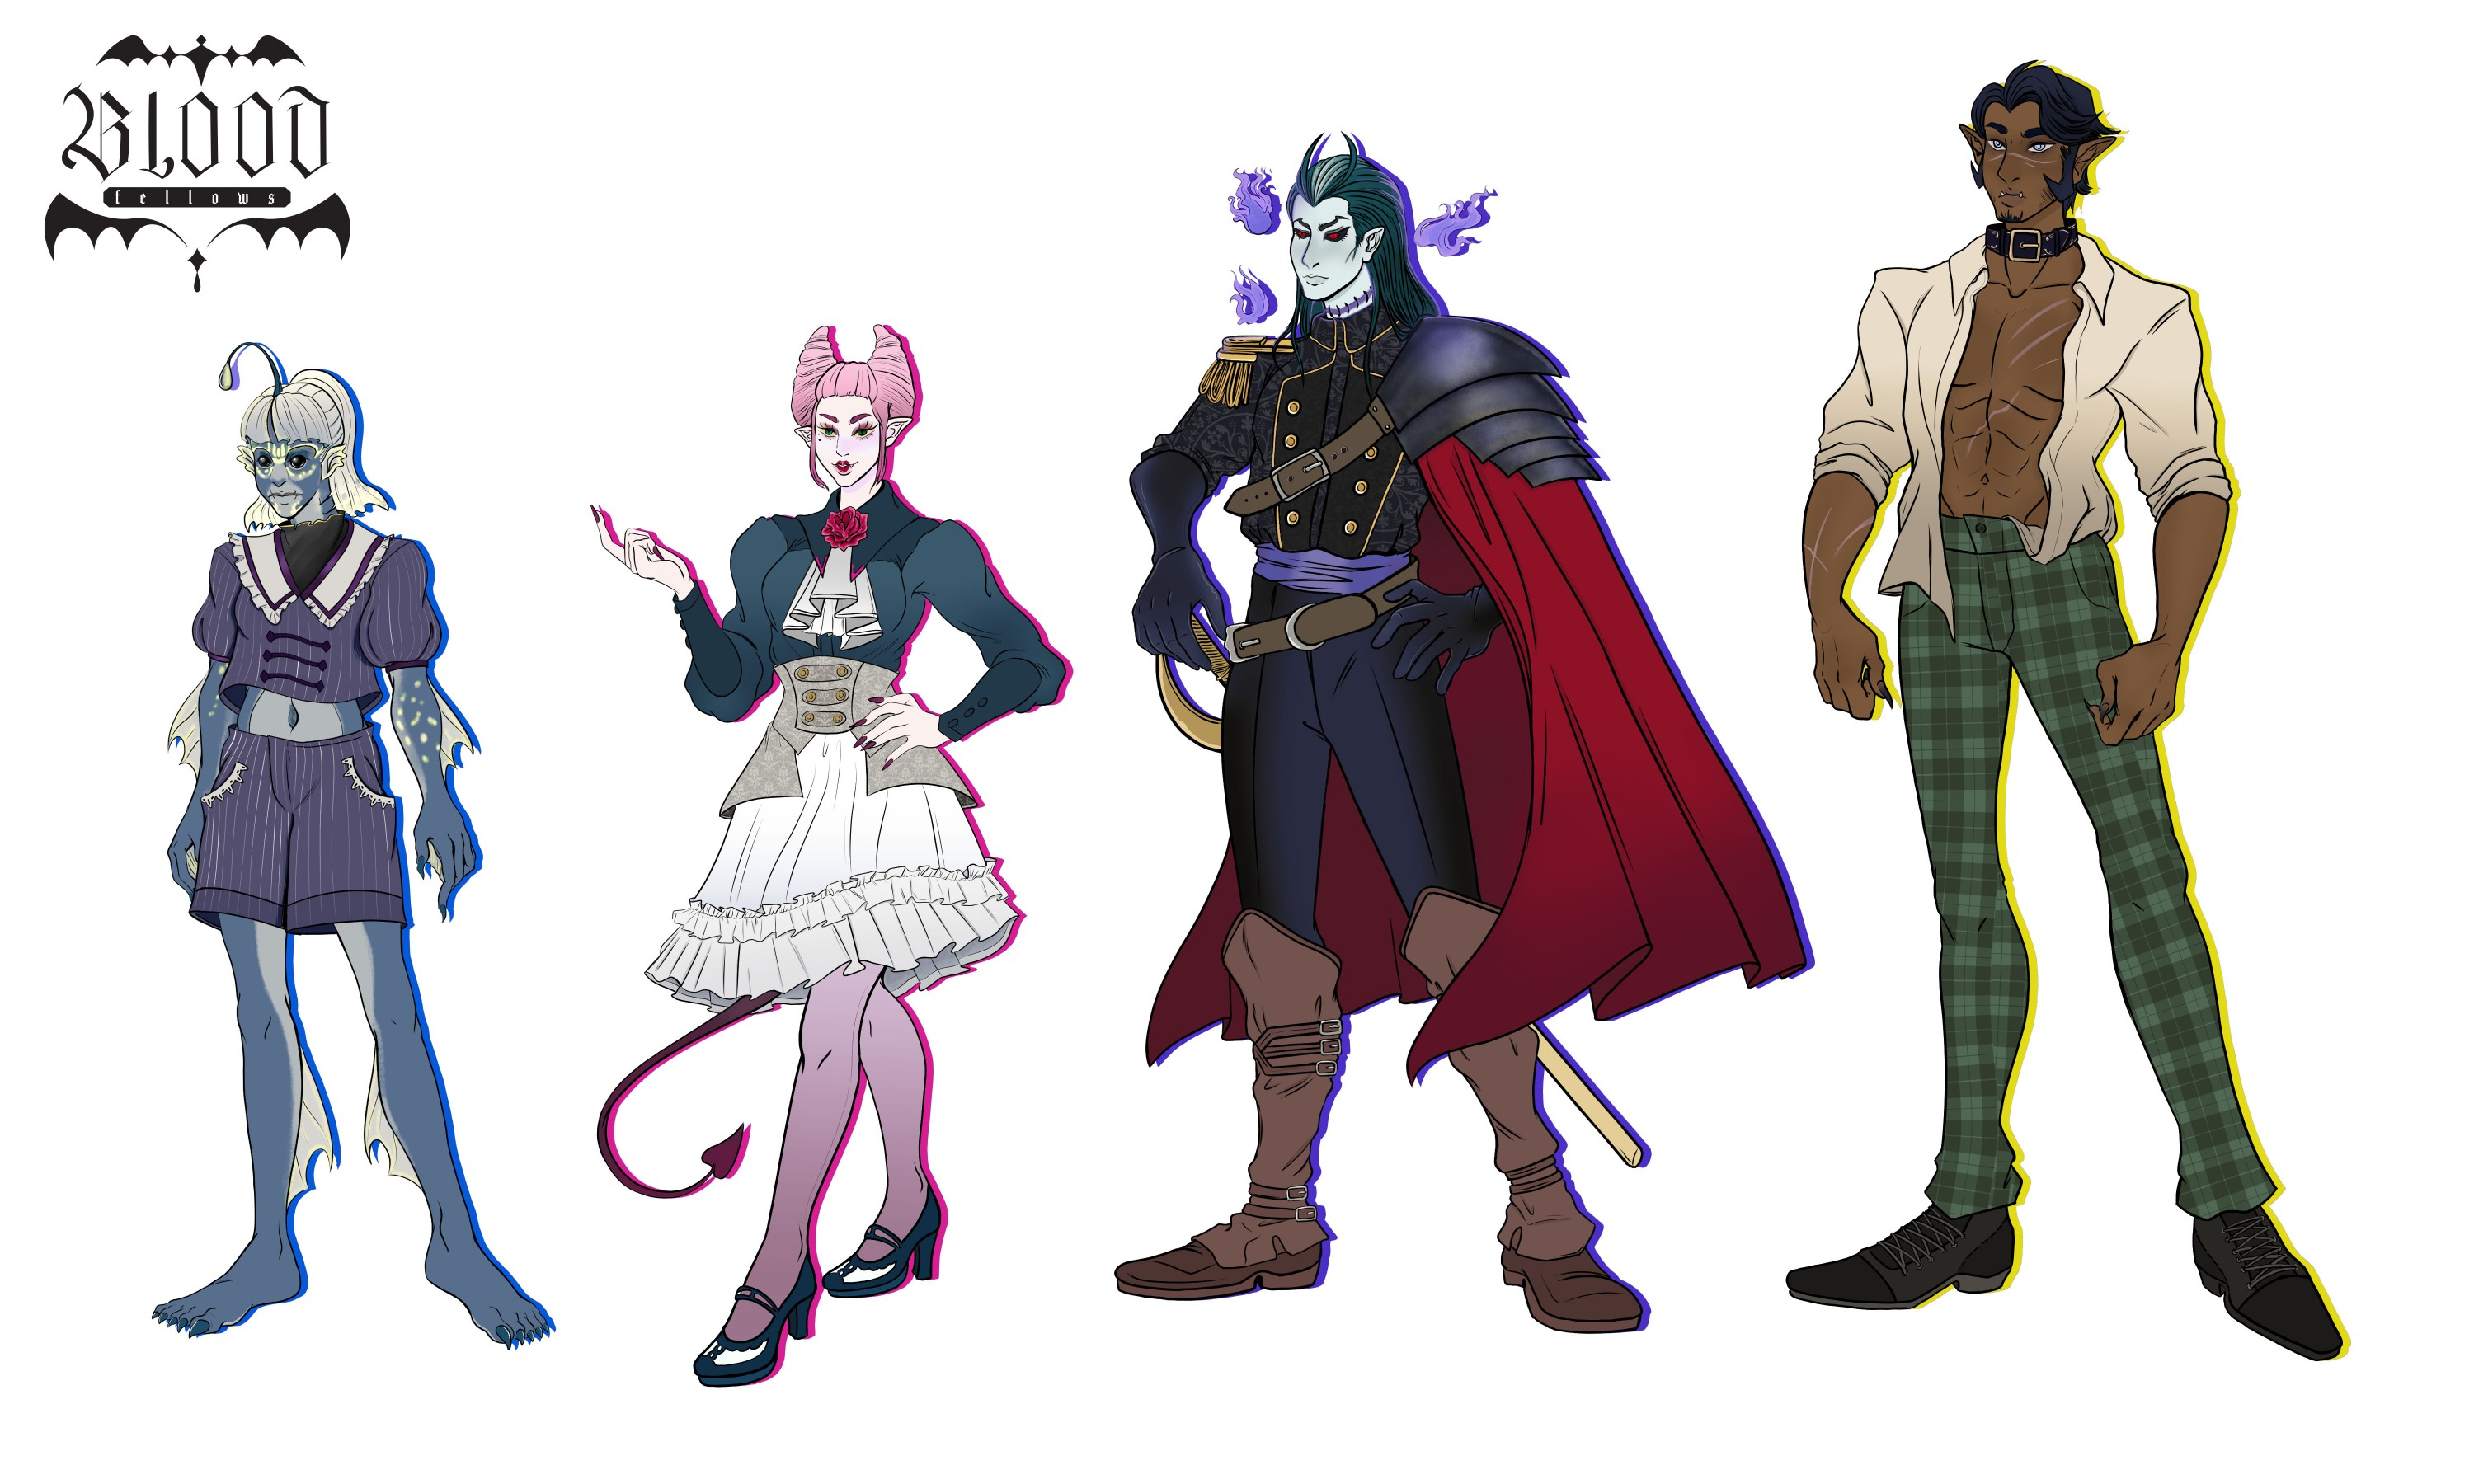 The following illustration is a lineup of character for a future game titled Blood Fellows